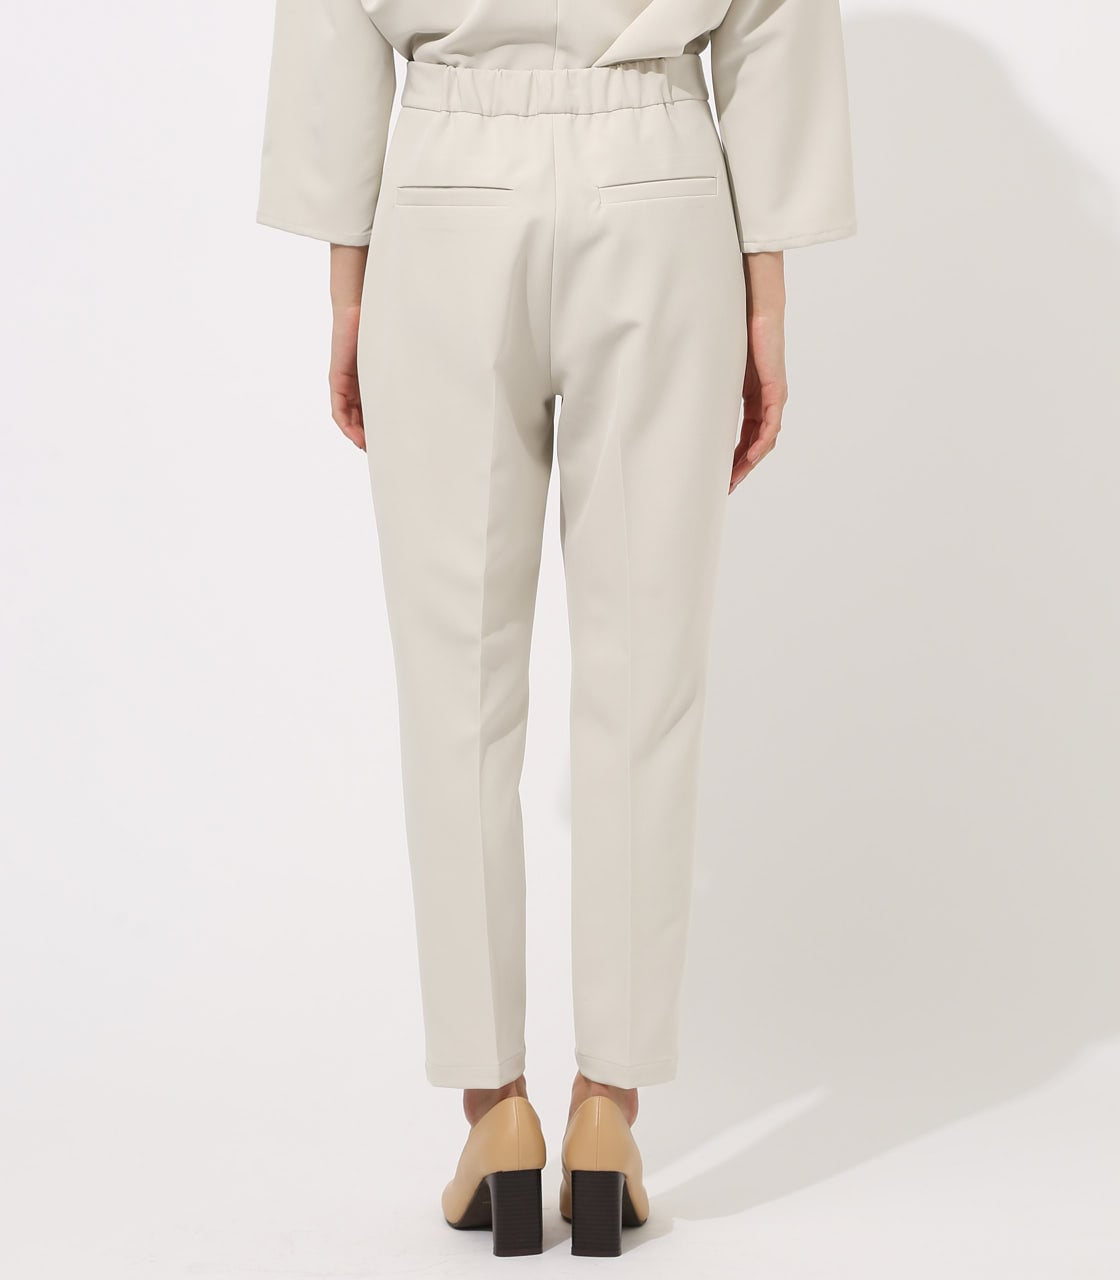 【AZUL BY MOUSSY】TACK TAPERED PANTS 詳細画像 L/BEG 7